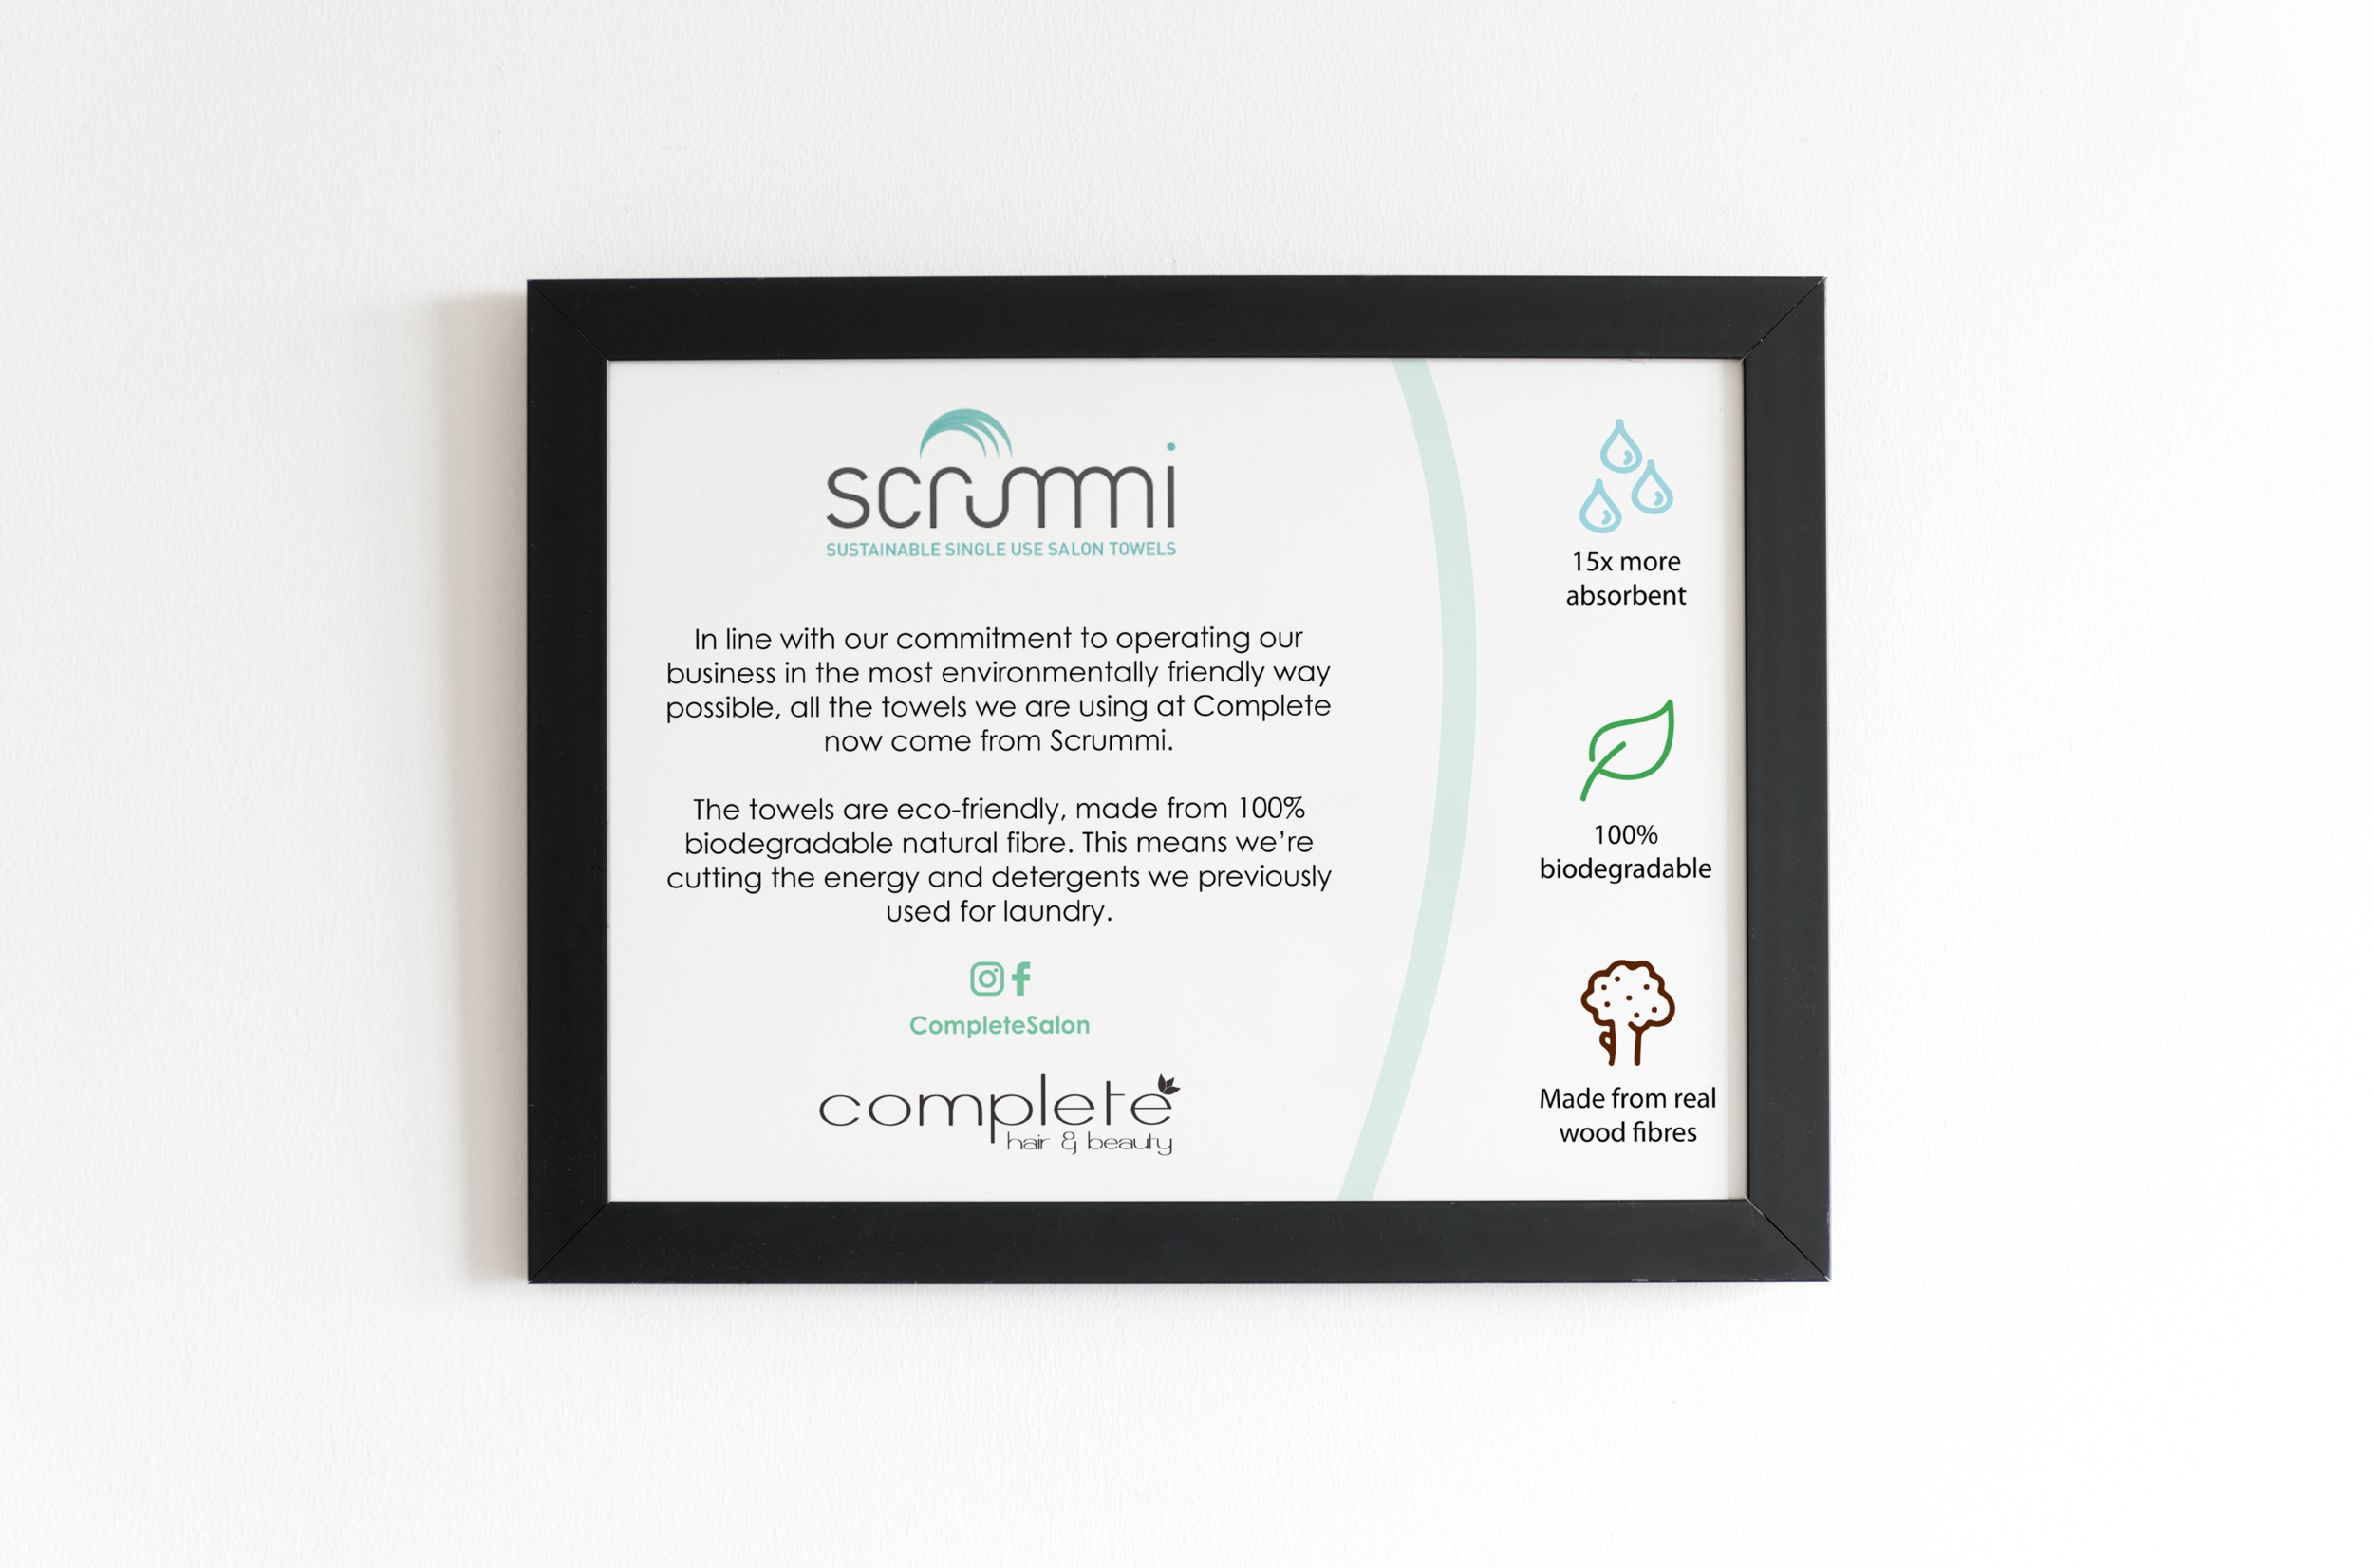 Scrummi products information poster